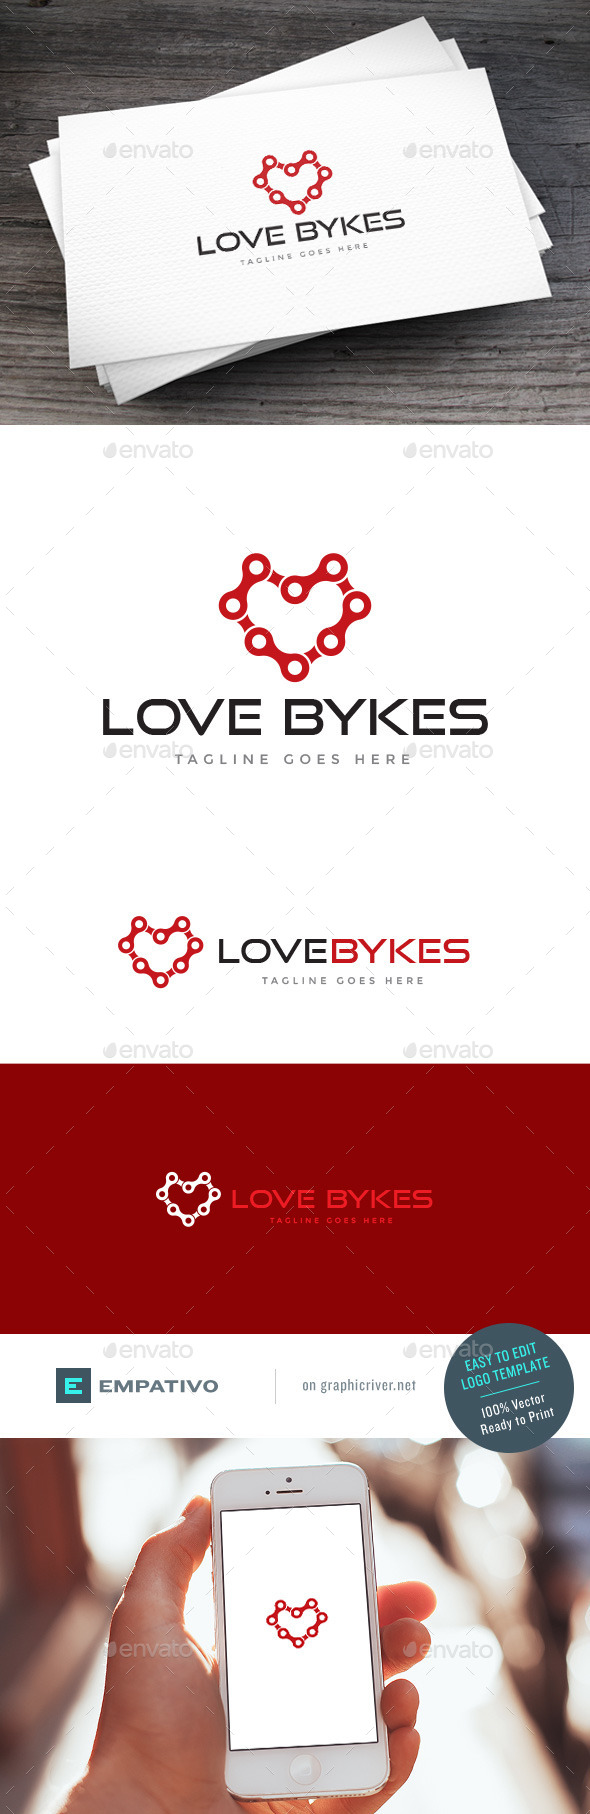 GraphicRiver Love Bykes Logo Template 11100981